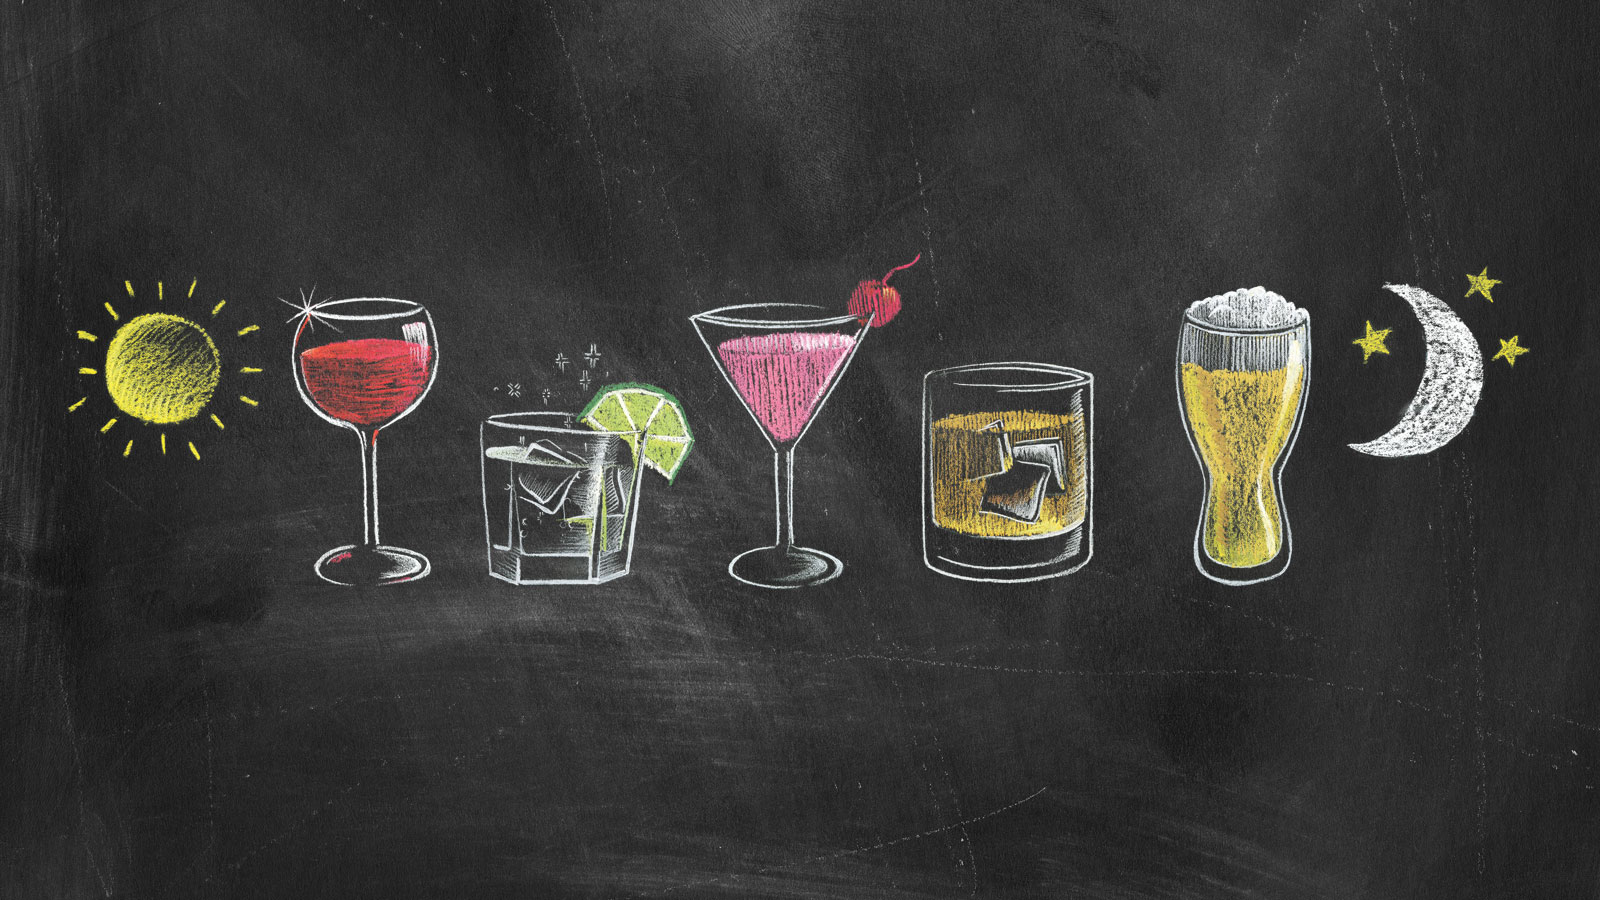 Drawings of alcoholic beverages